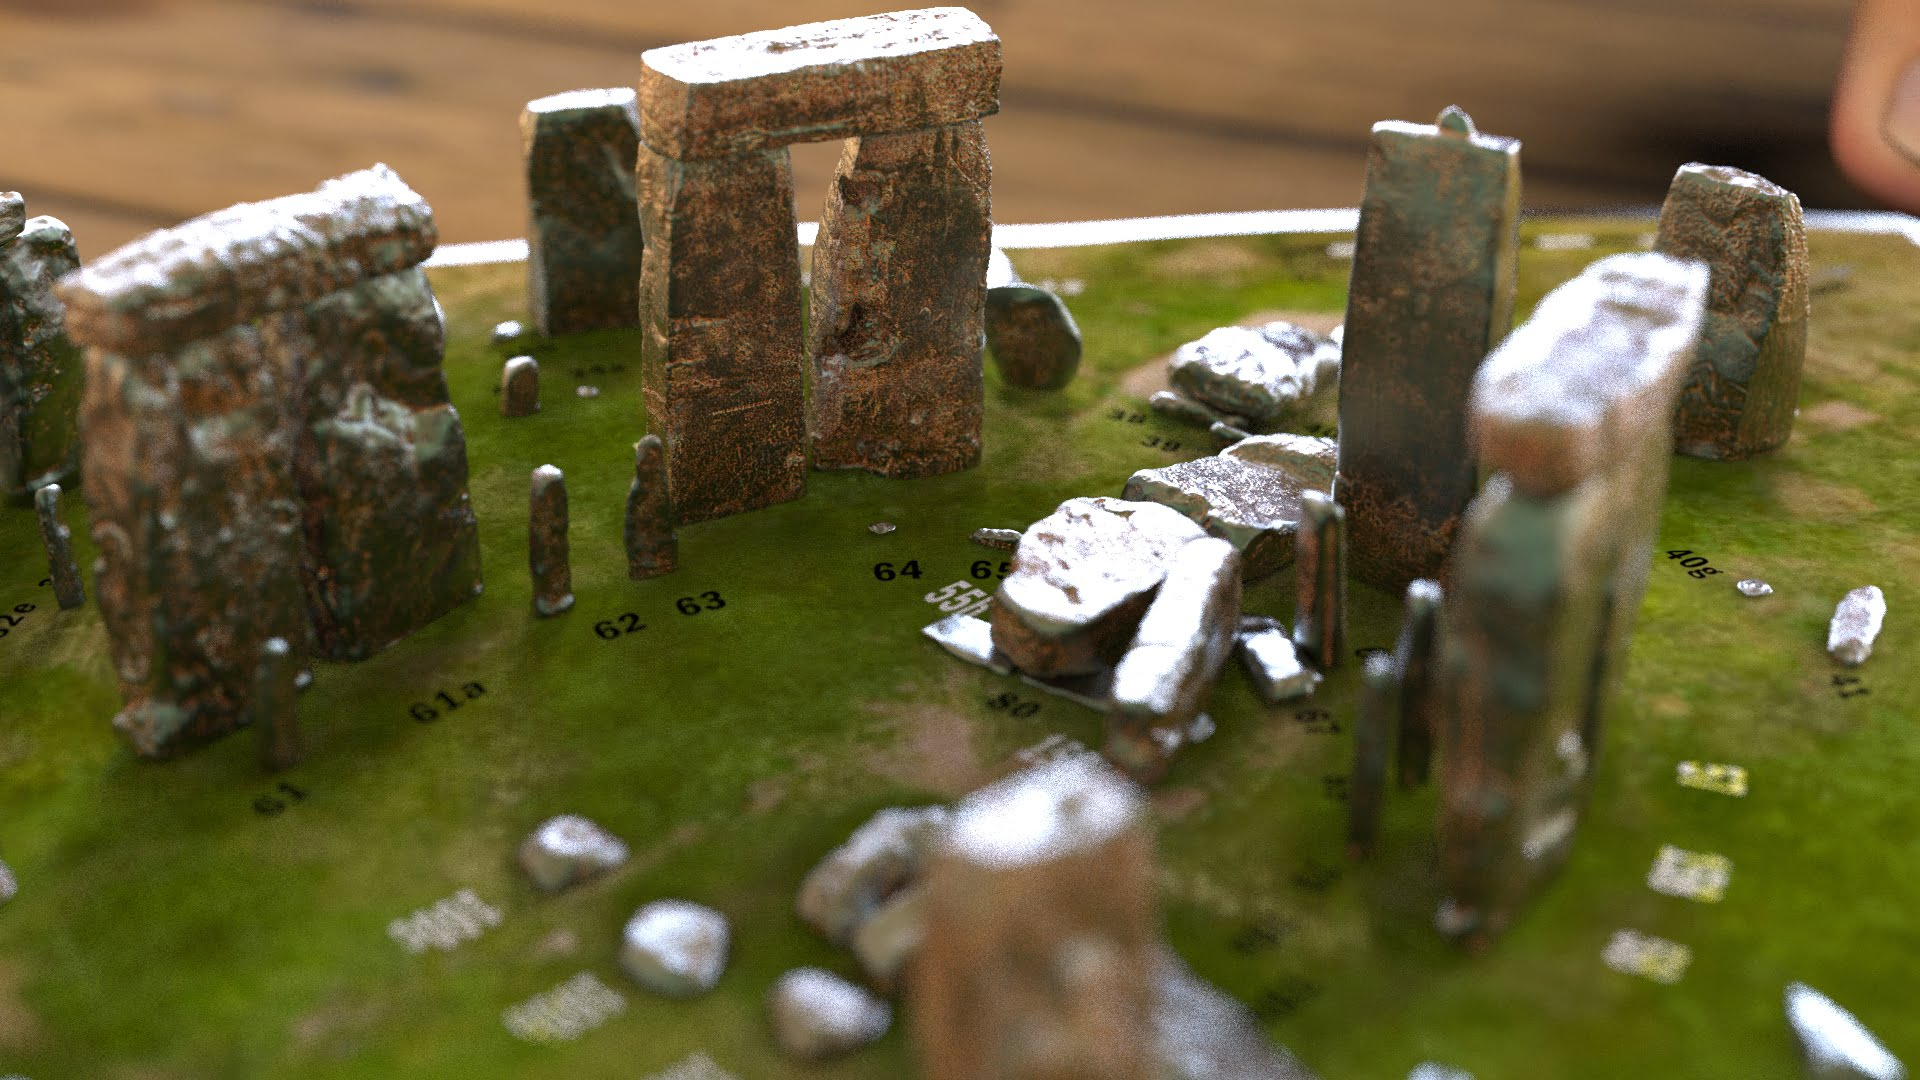 Buy Stonehenge Models: Light rust patina on cold cast Stonehenge model replica 195 x 195 mm or 7.7 x 7.7 inches square base with grass decal with or without numbered stones on ground map 005  - Full set -